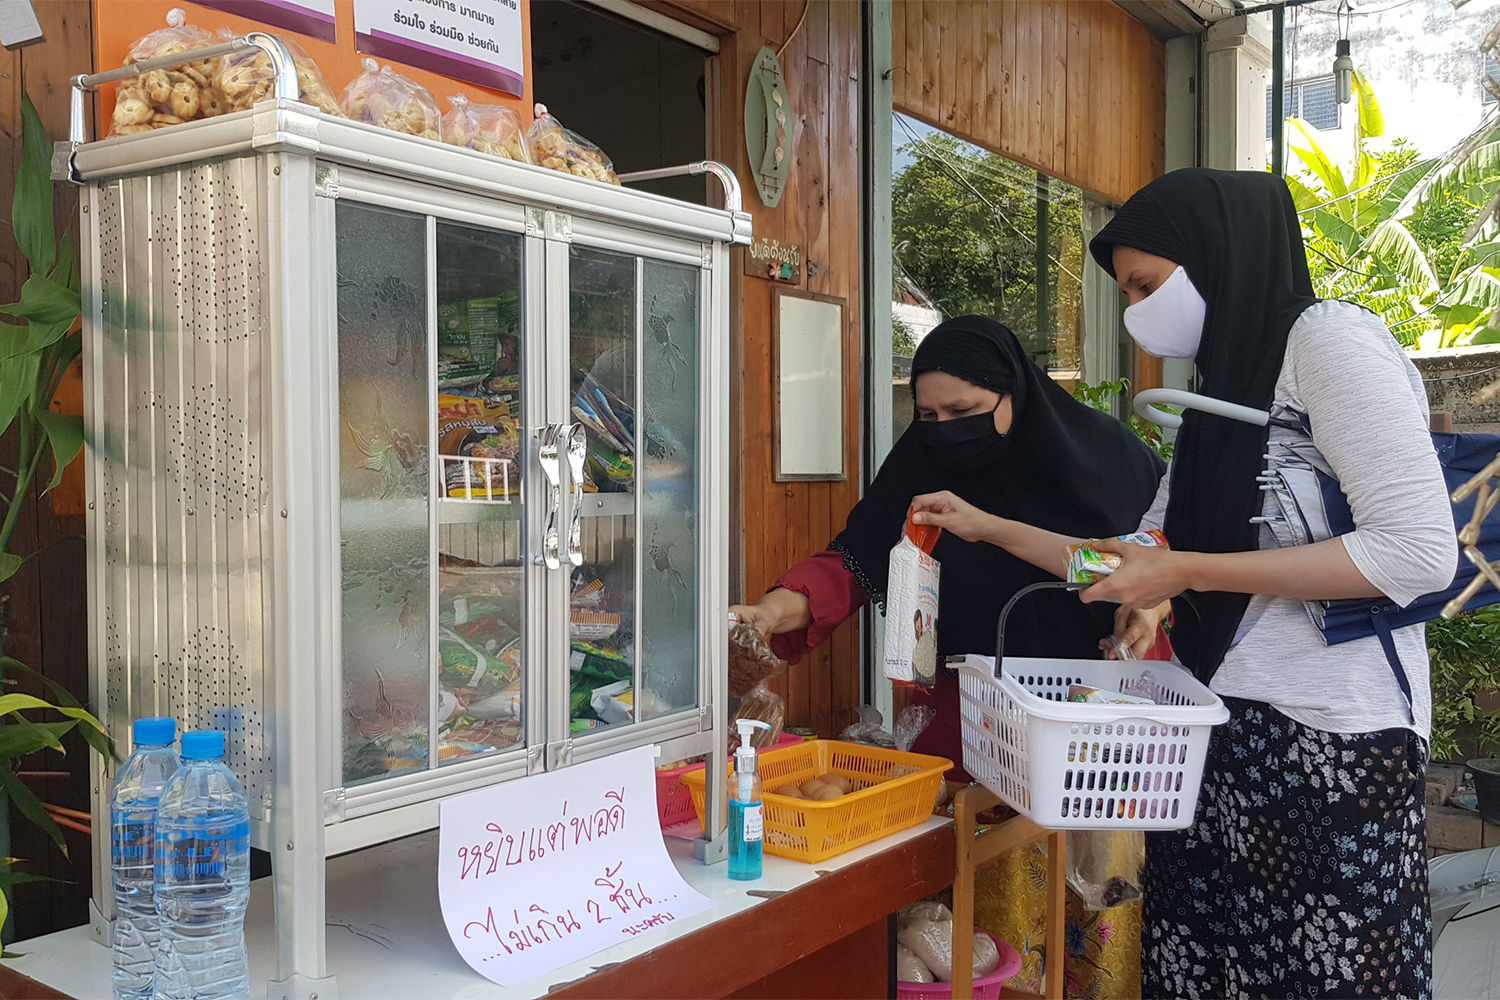 People place items in a community pantry in Muang district of Phitsanulok. The pantries have been found in 43 provinces as of Monday. (Photo by Chinnawat Singha)